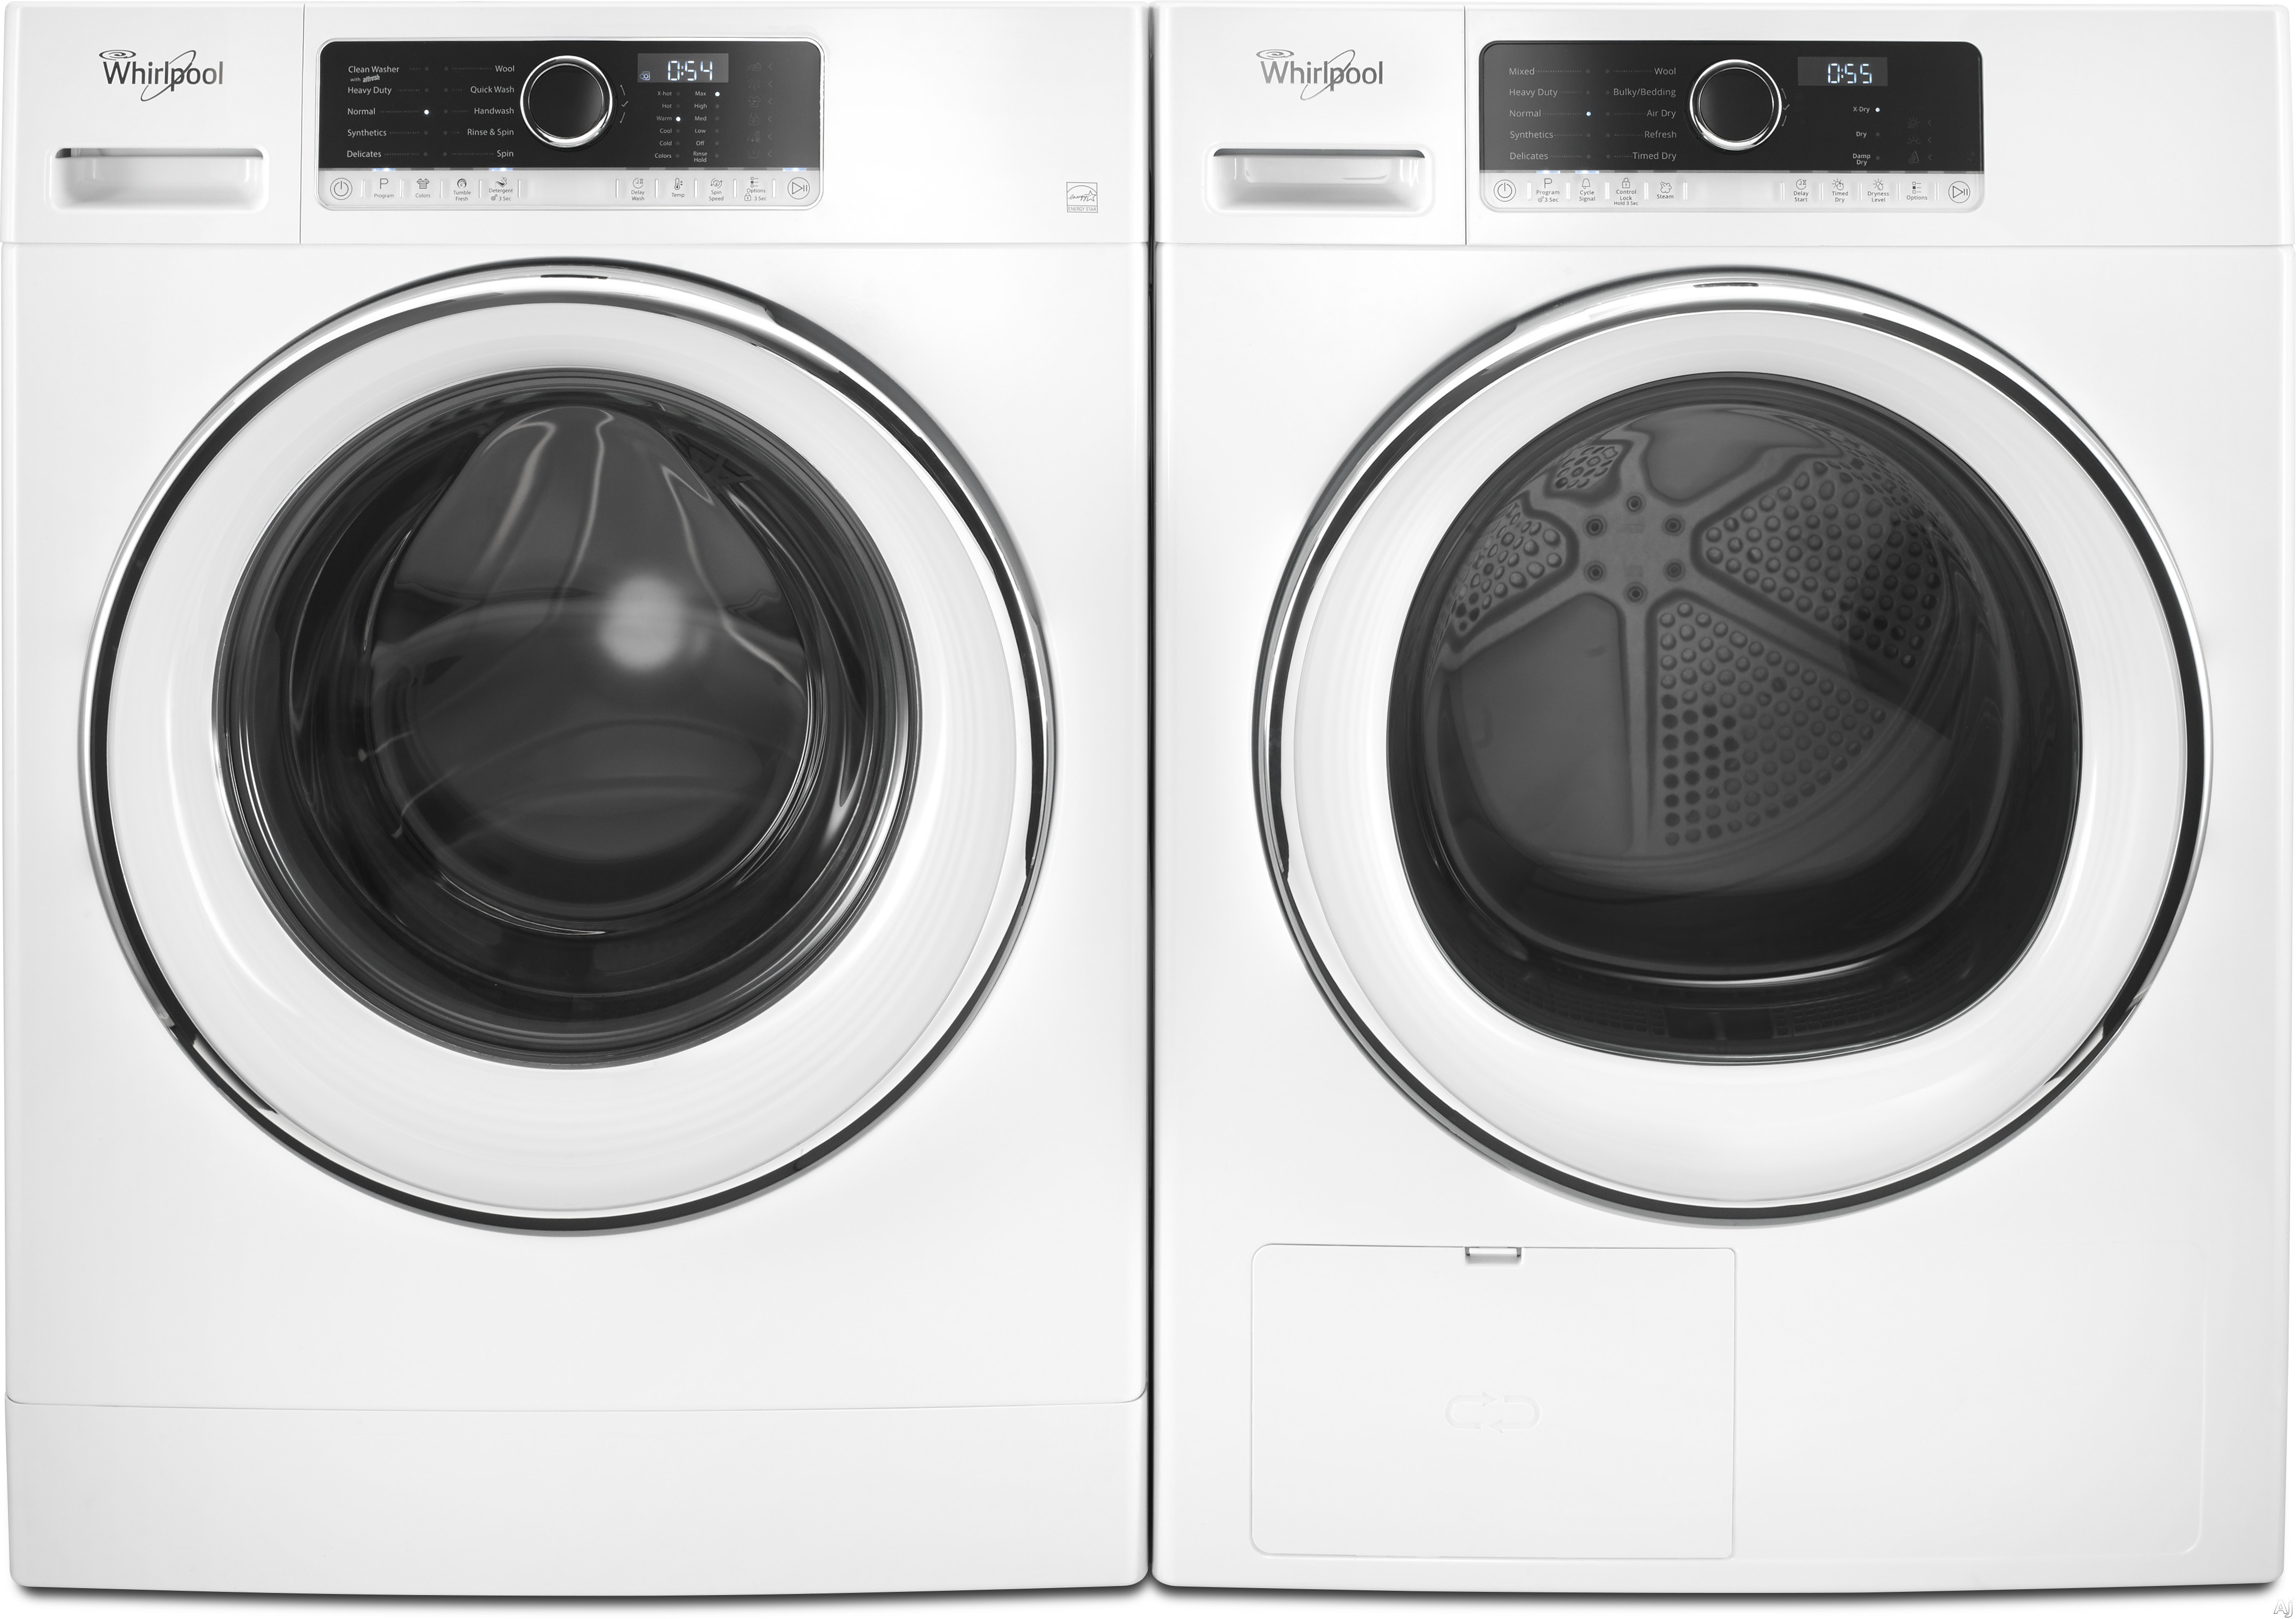 imgid washerdryer diy u and buy shocking tesla inspiring is marathon washers appliances pinteres concept trends wired pedestal of we dryers washer laundry for pict us pics the dryer